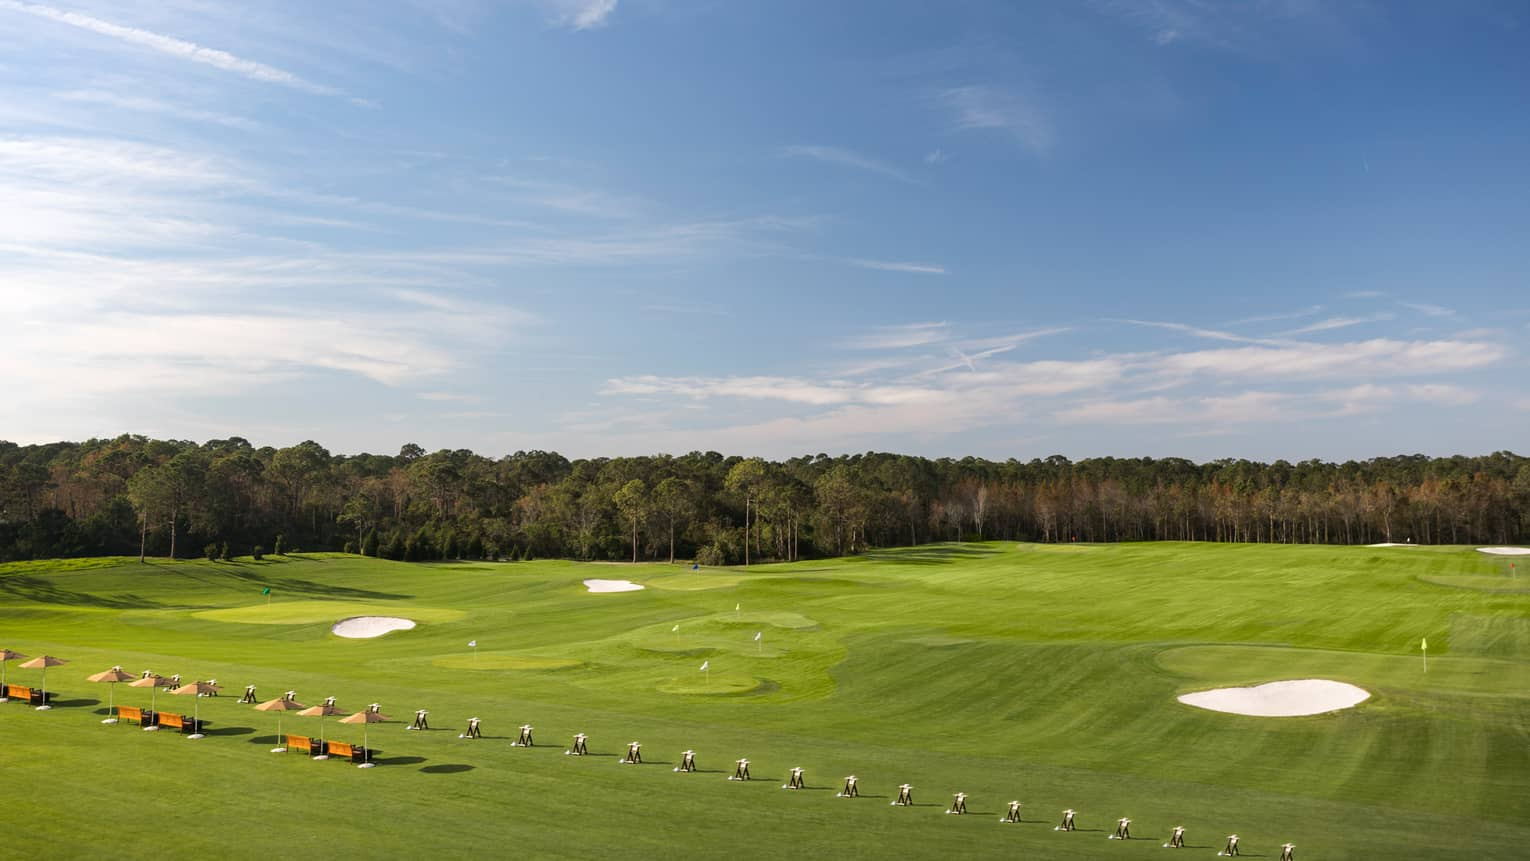 View over large green field golf practice facility, trees in distance